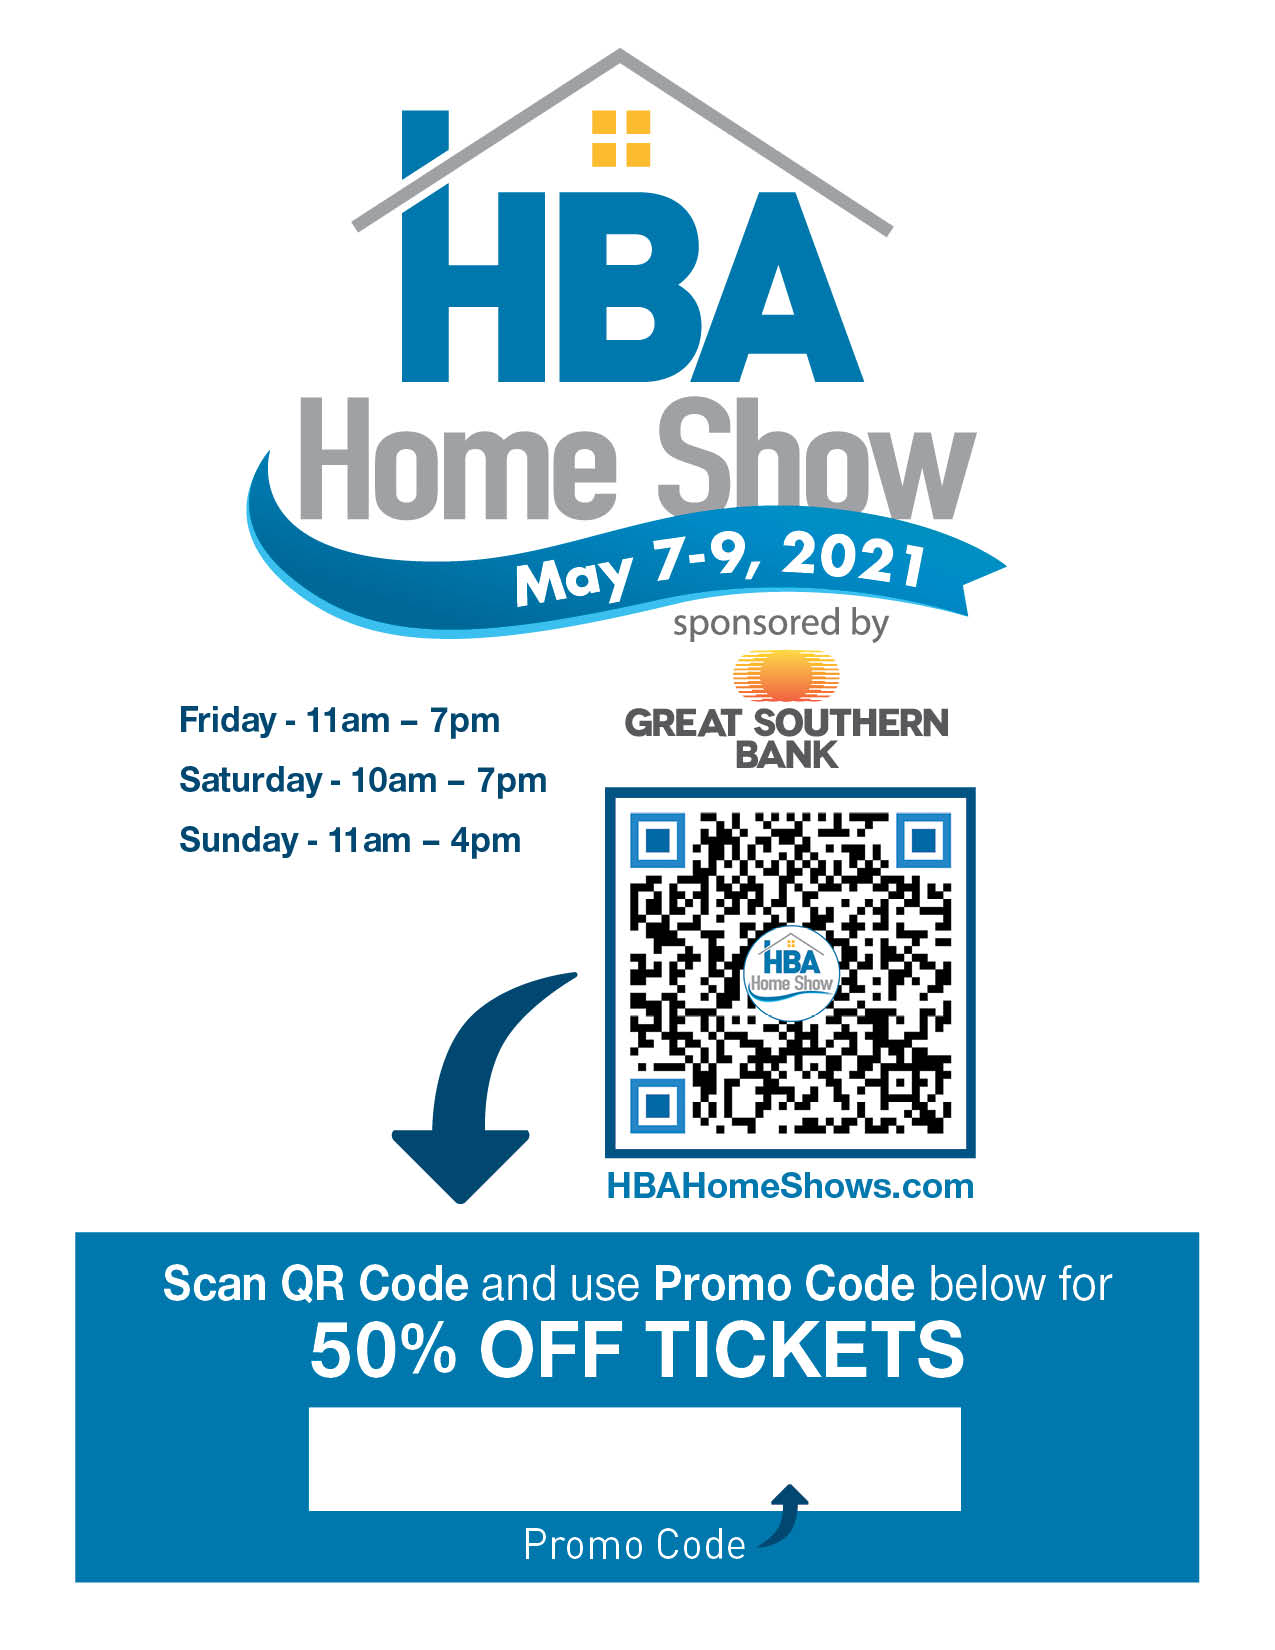 Home Show Tickets Flyer with Sponsor - Use Your Promo Code